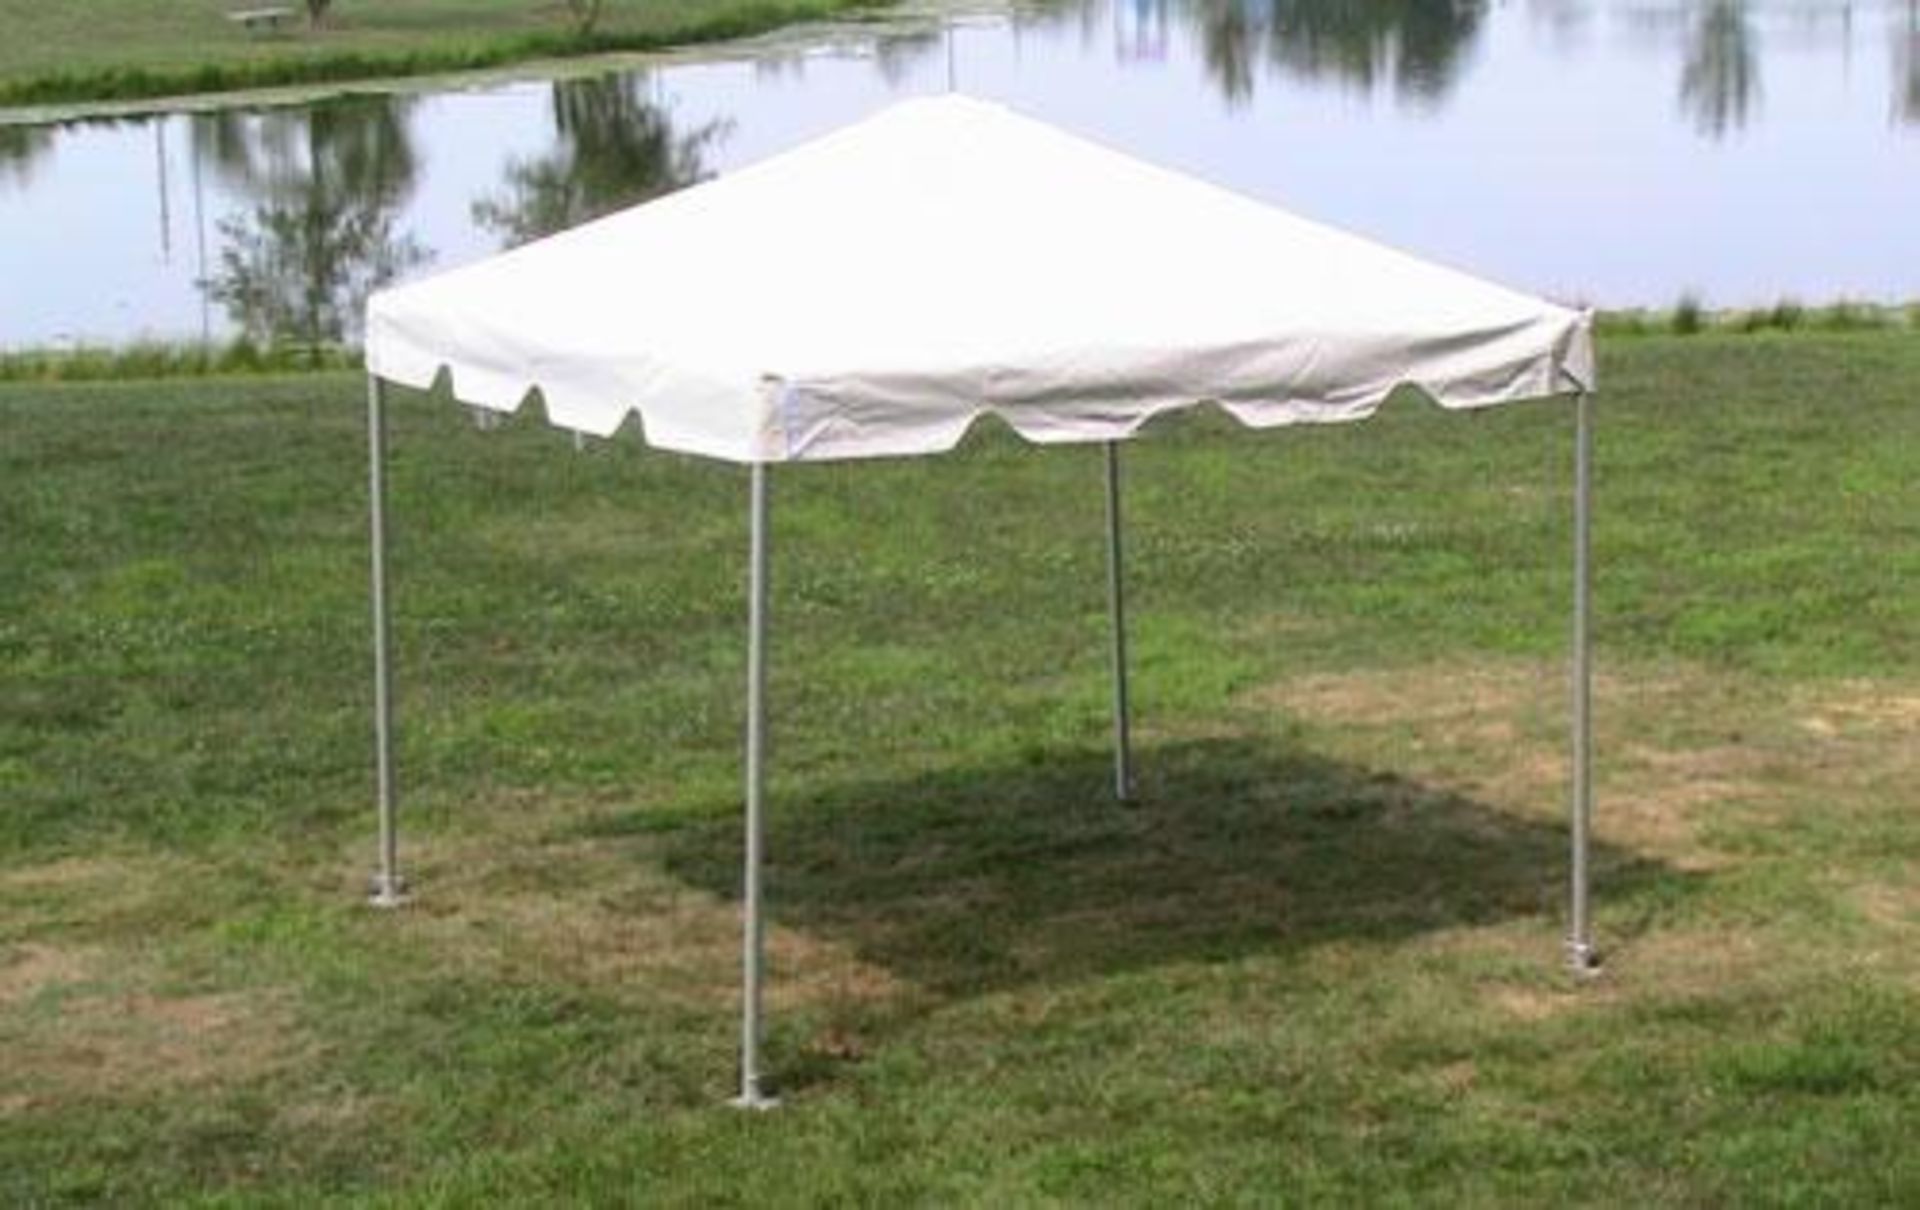 Lot 52 - 10 ft. x 10 ft. Frame Tents - Complete(sidewalls and rain gutters lots available)